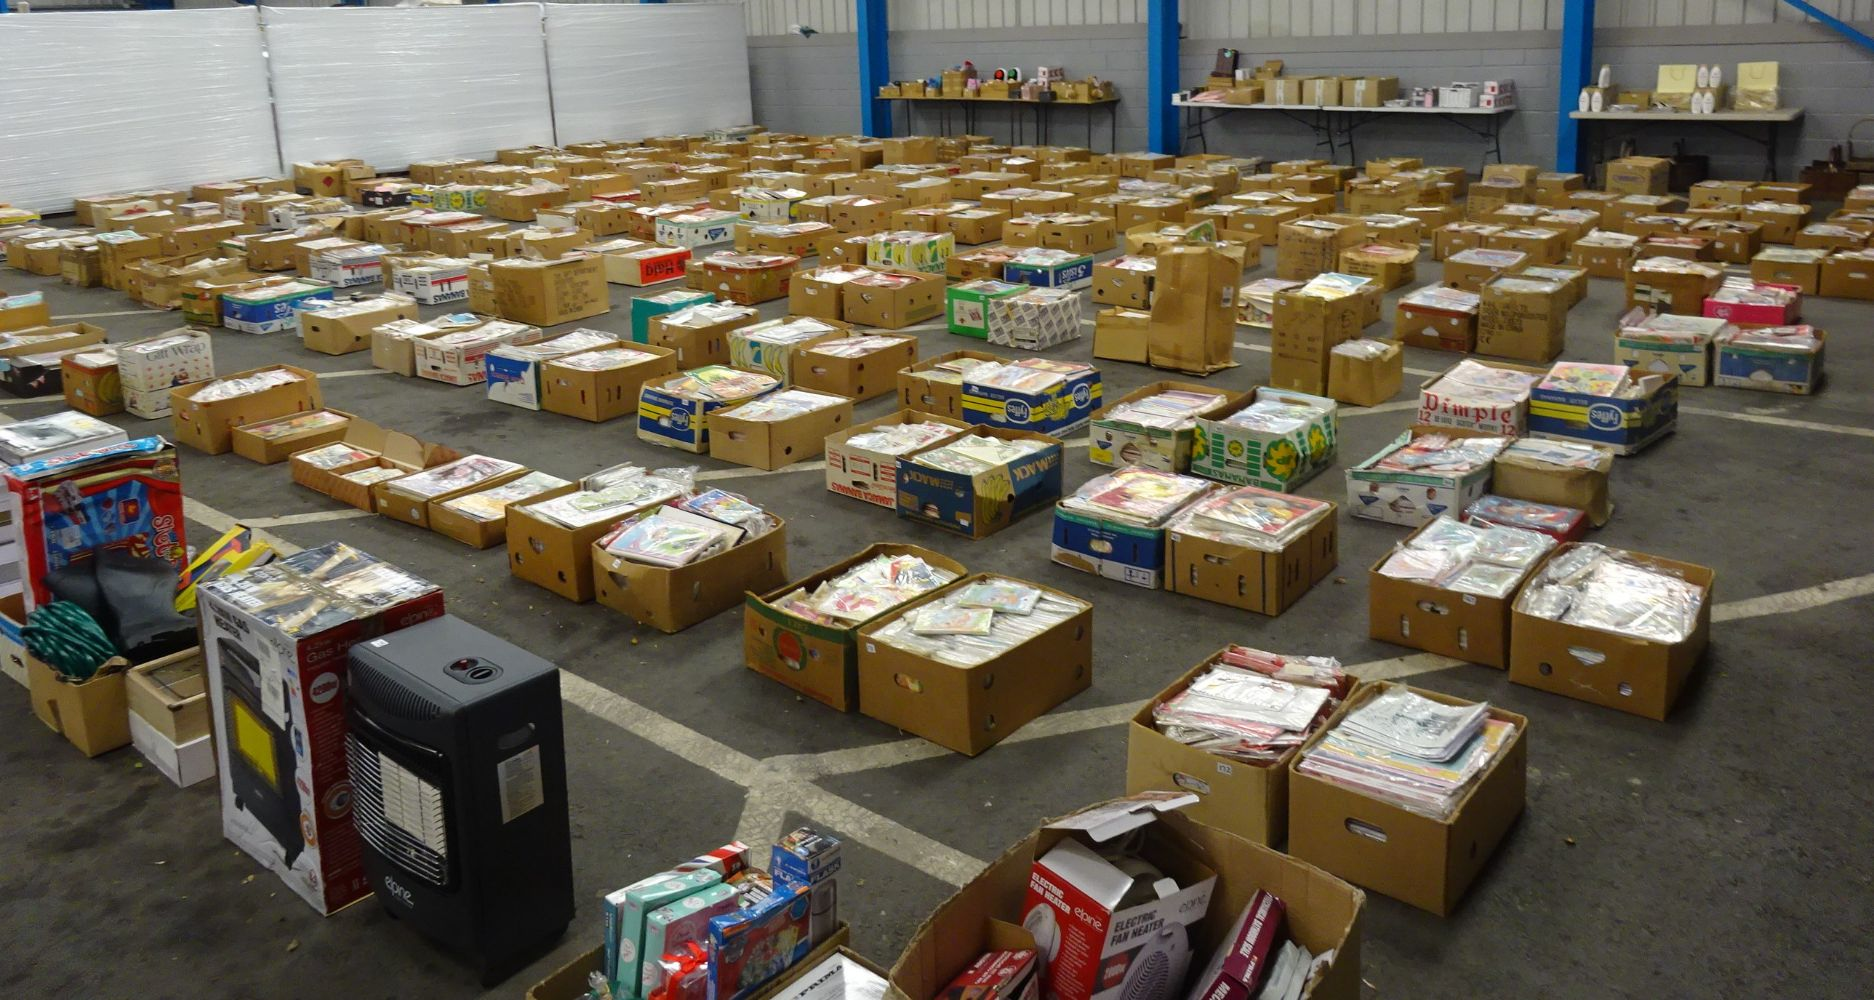 Over 150,000 New Birthday & Assorted Cards From Shop Closure & Boxes Of Raw Untested Customer Returns Including Kitchenware, Electricals etc